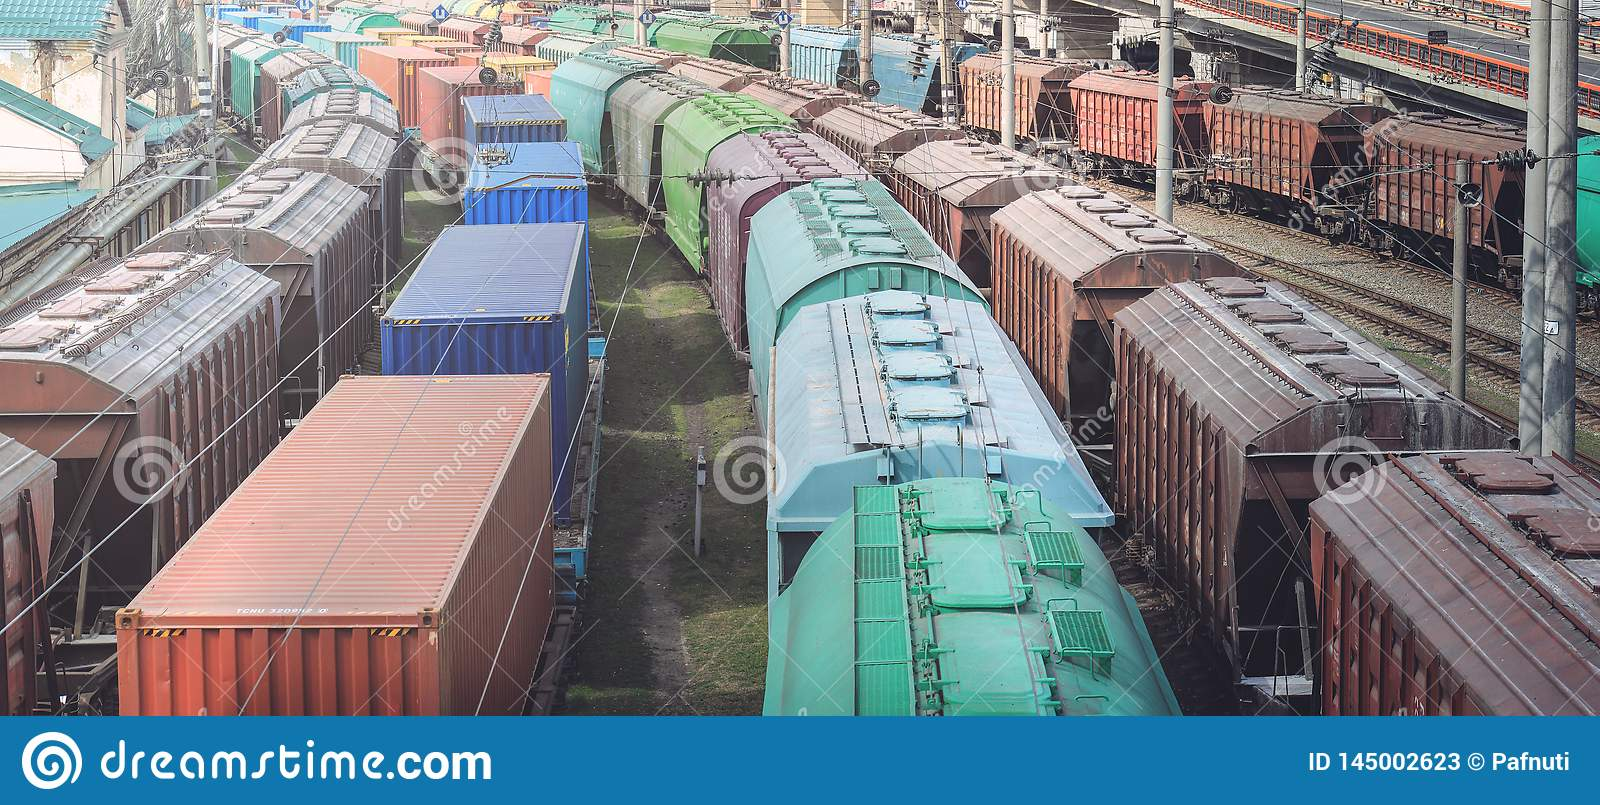 Railway wagons with cargo of metal and grain in port of Odessa. trains are waiting in line for loading at cargo terminal.